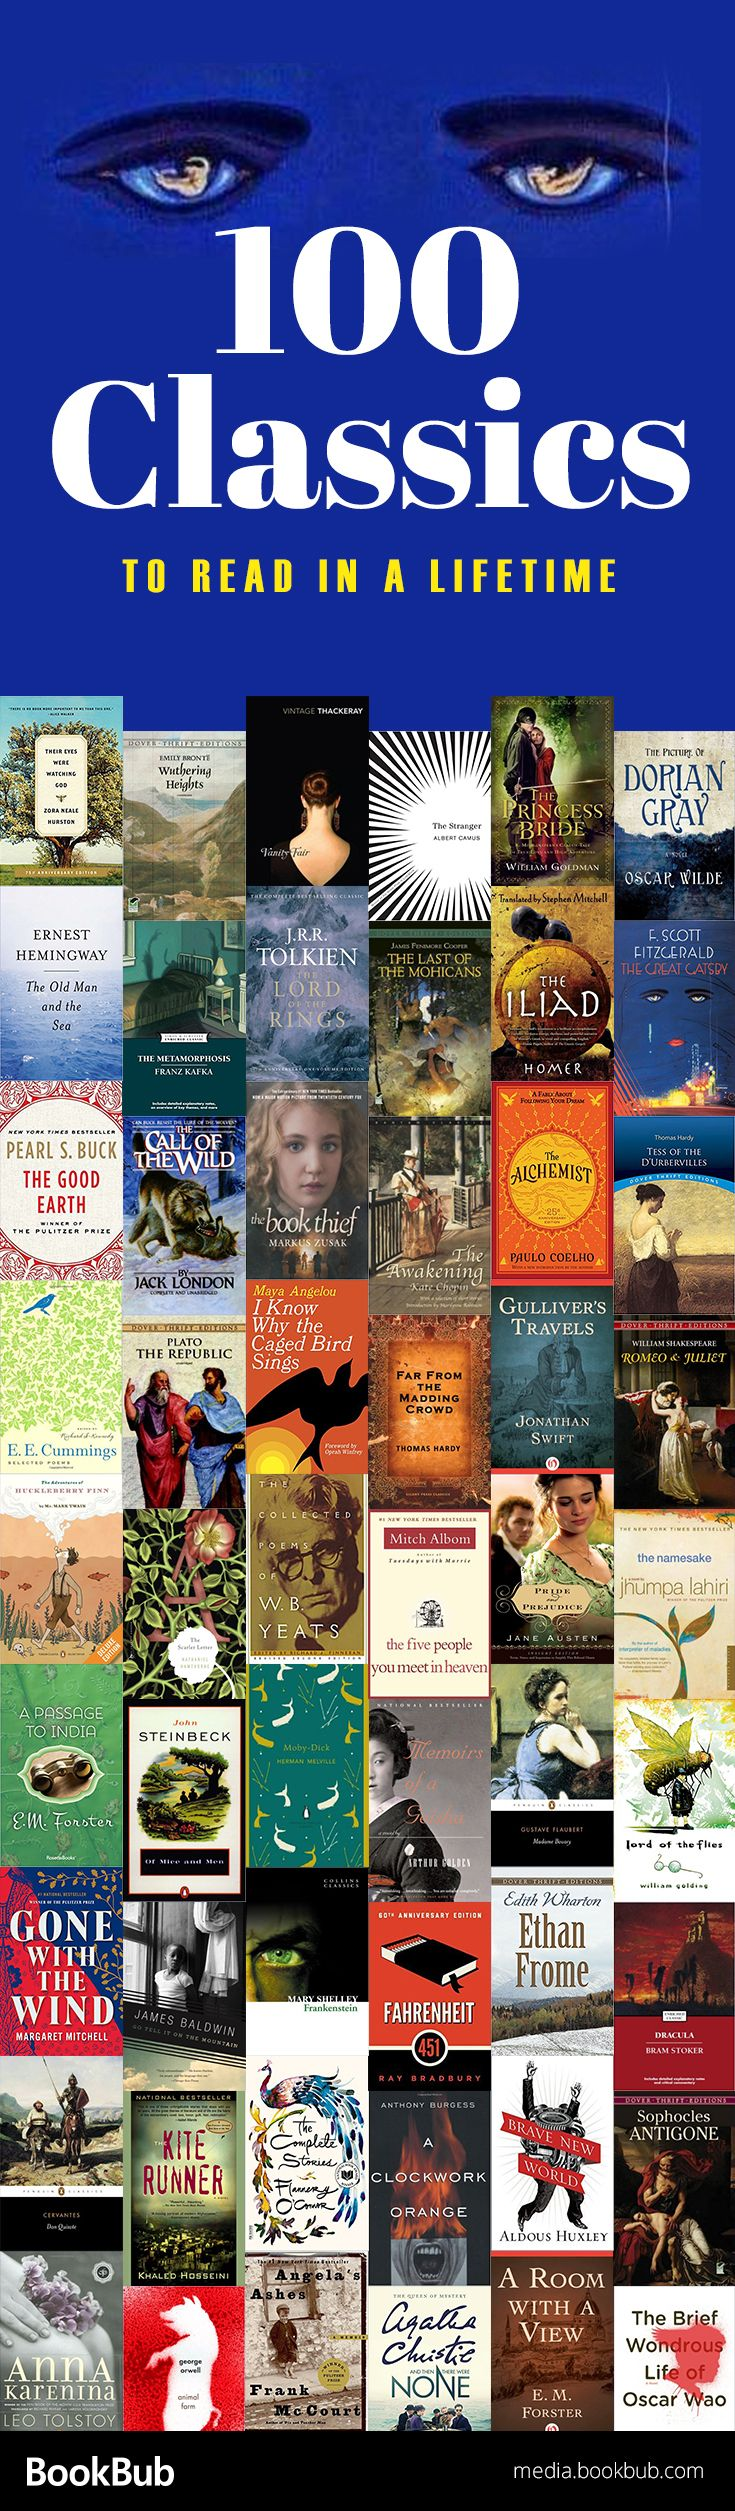 Looking for some classic book list with some of the best literature? Check out these classics for women, for teens, for kids, and more.